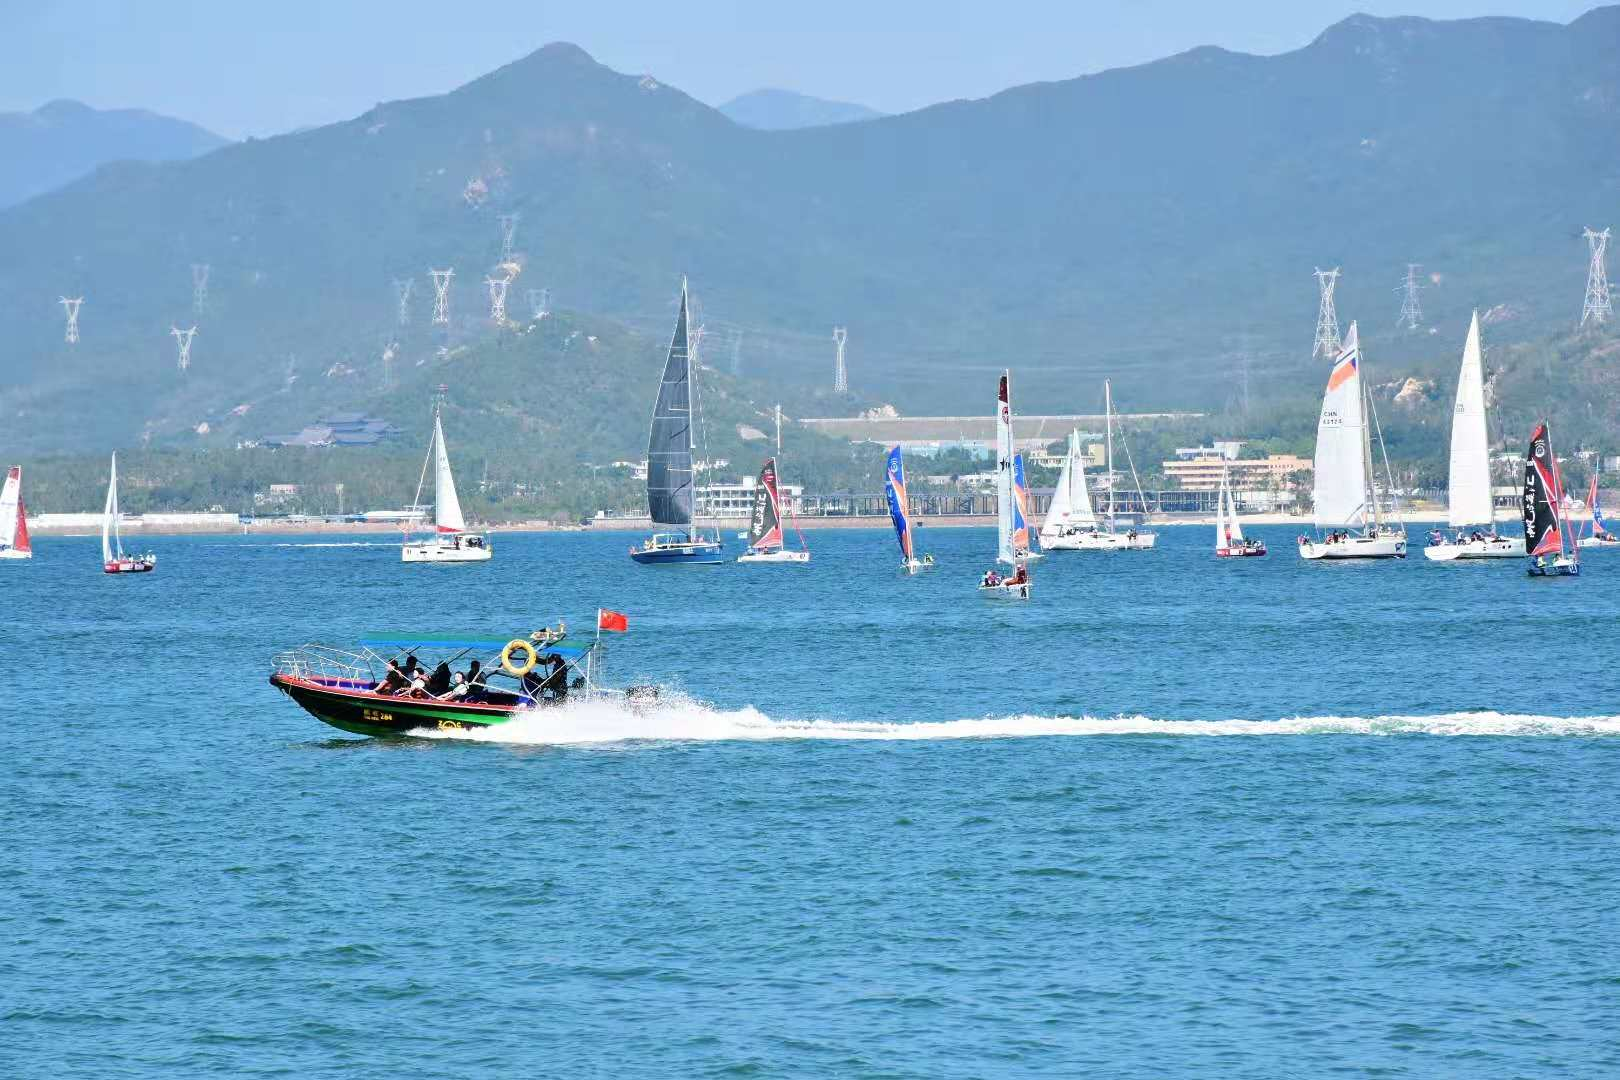 , Fall 2018 Dapeng Yacht Club Water Sports Outing, SDE Seadragon Education